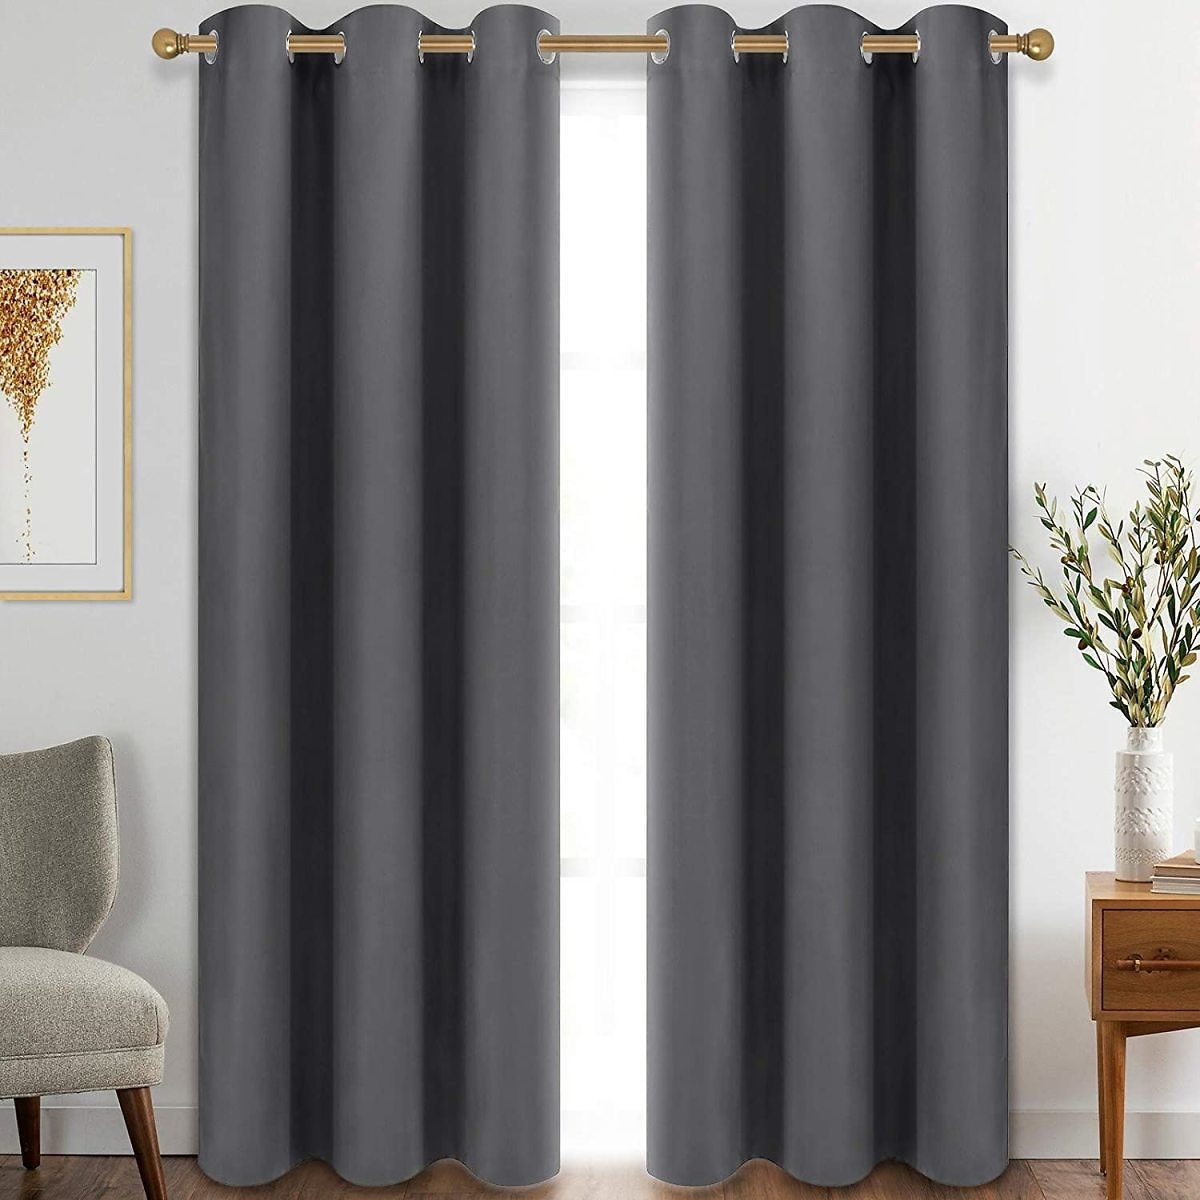 Diraysid Grey Blackout Curtains for Bedroom Grommet Thermal Insulated Room Darkening Curtains (42 X 84 Inch, 2 Panels)